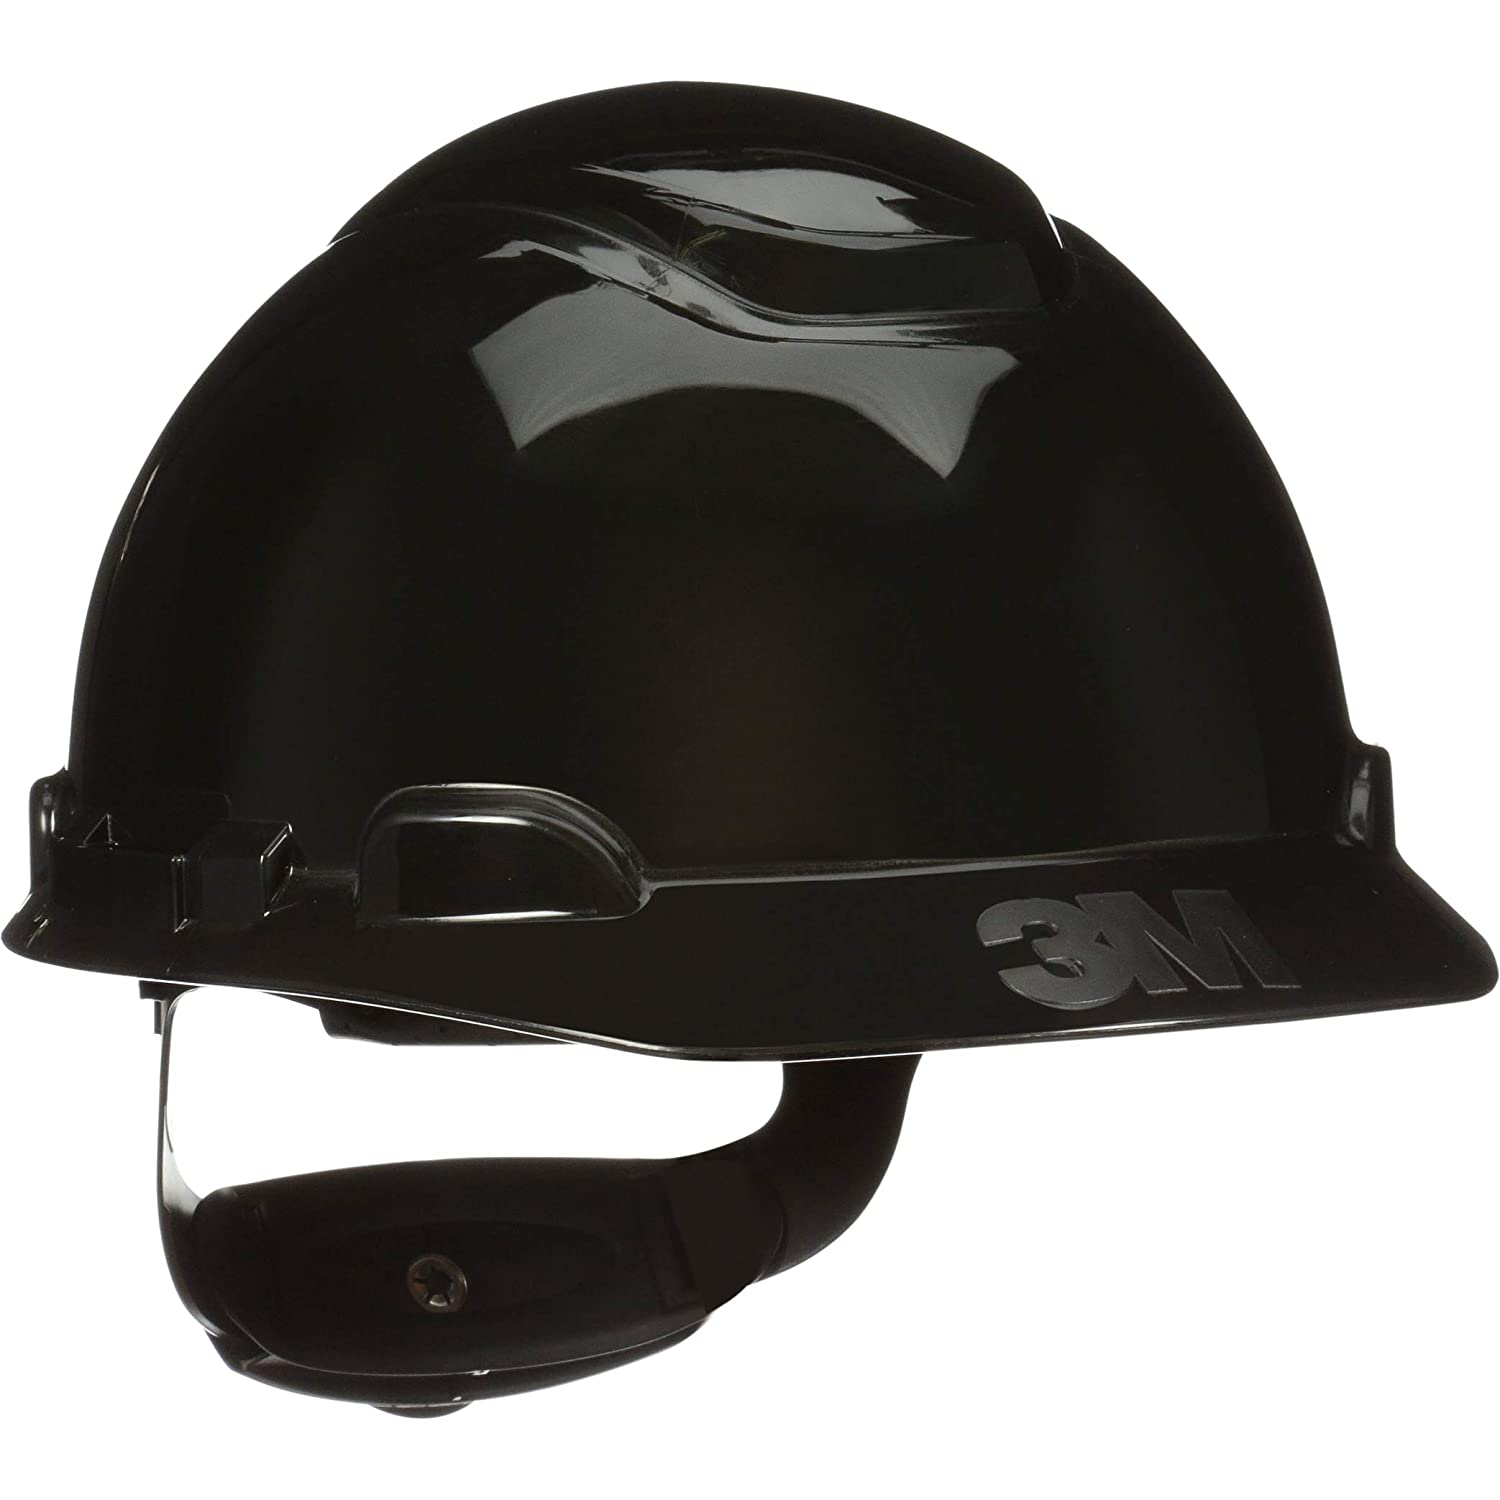 3M Hard Hat Black Lightweight Inexpensive 4-Point Adjustable Ratc Max 79% OFF Vented